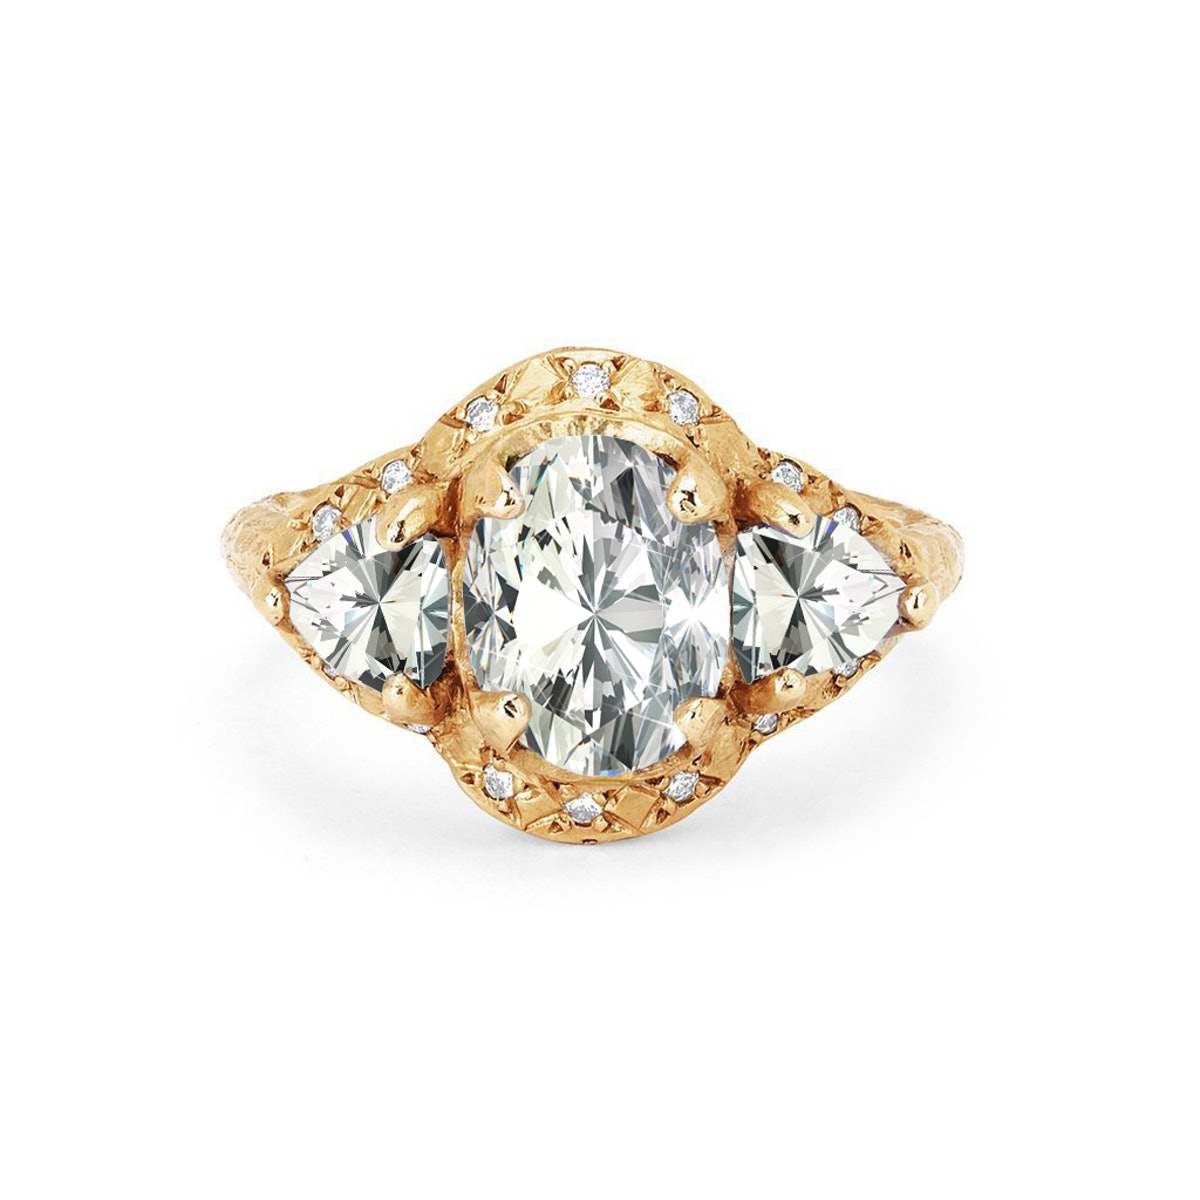 Queen Triple Goddess Trillion Diamond Setting with Sprinkled Halo from Logan Hollowell.